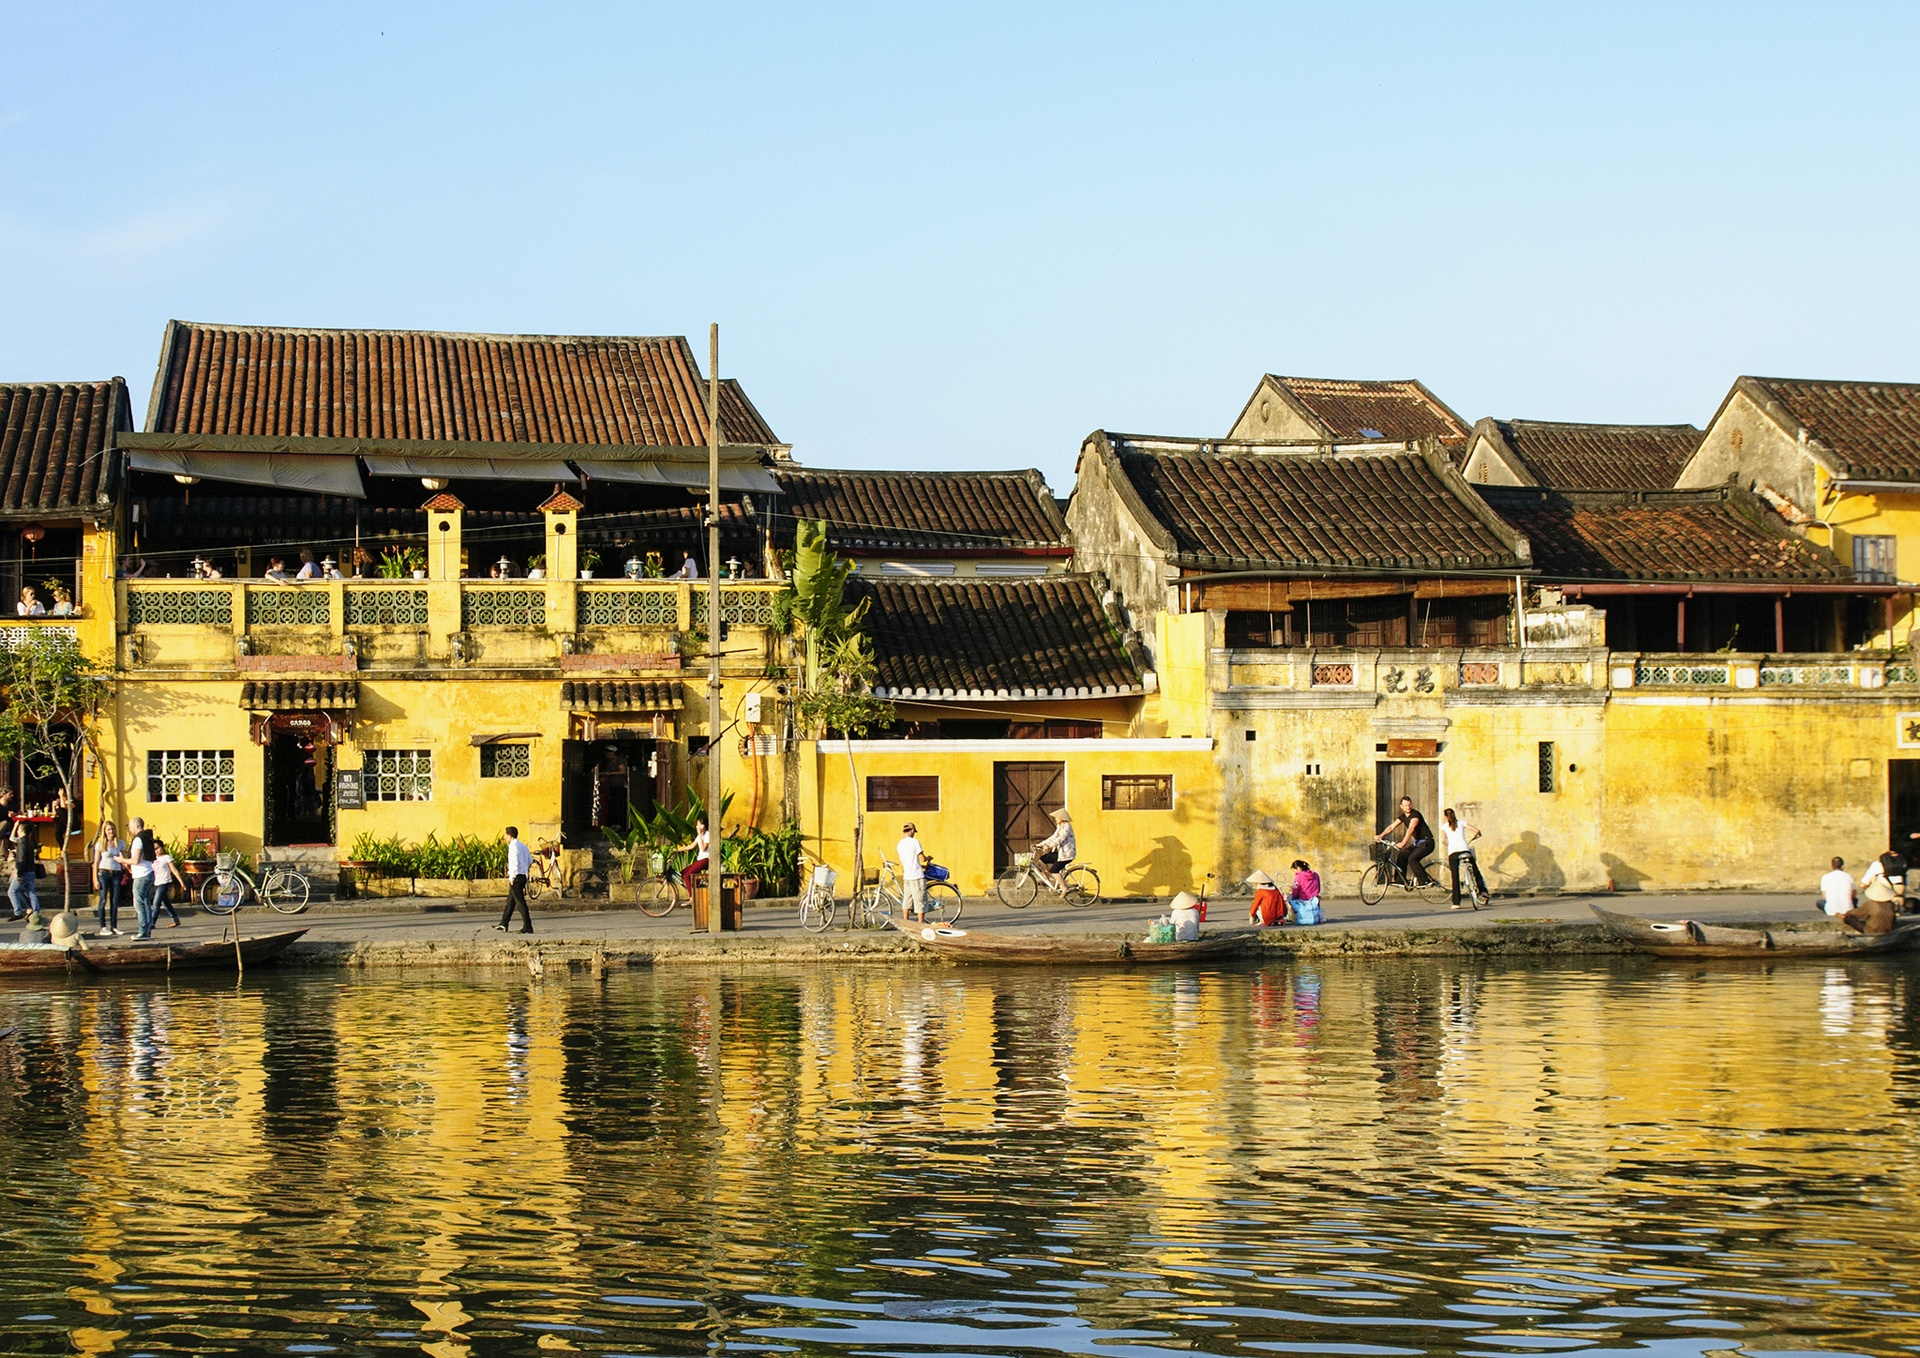 canh dep du lich Hoi An anh 17